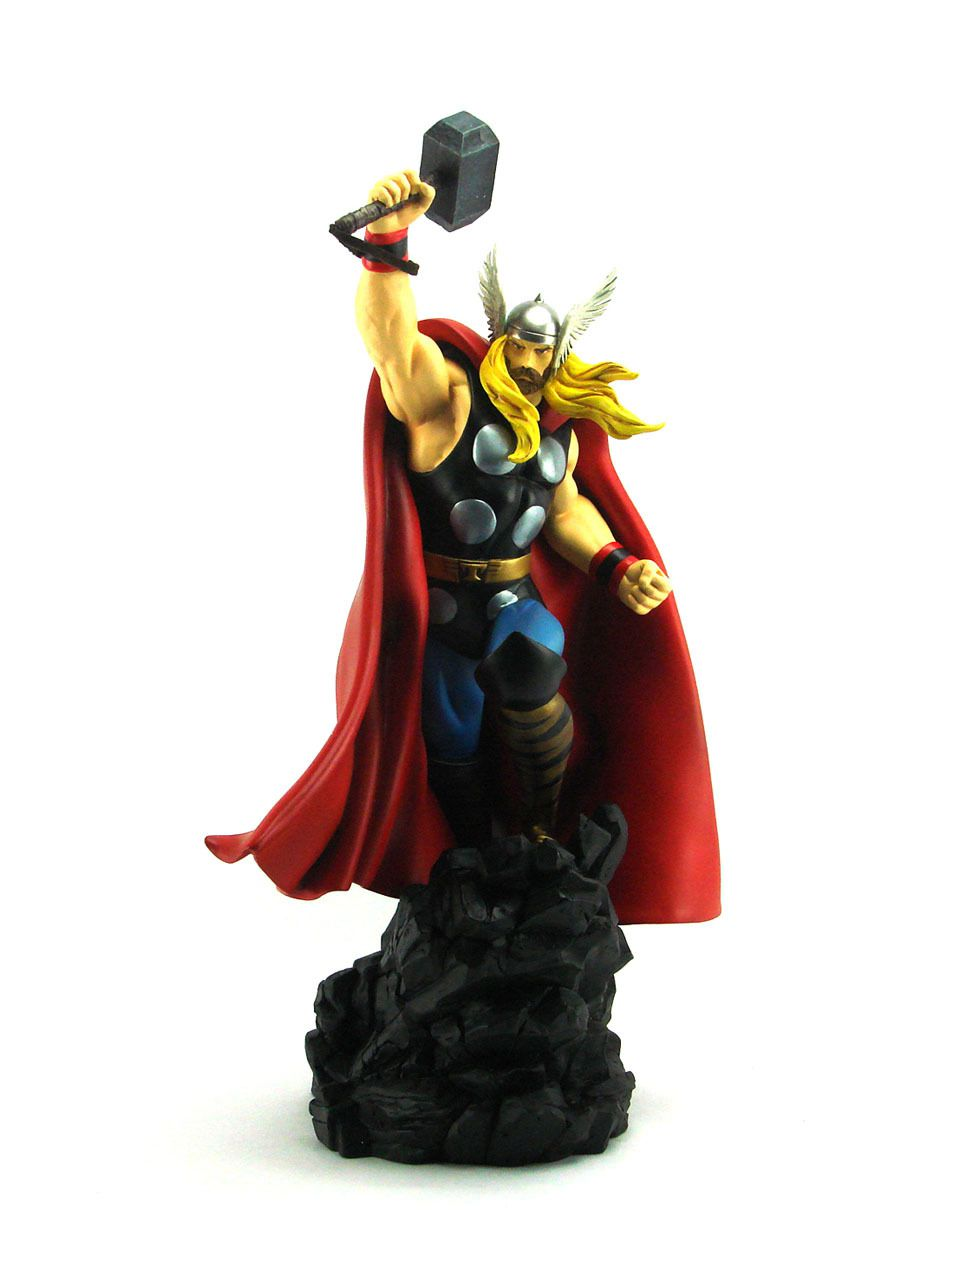 Estátua The Mighty Thor (Change-O-Head): Marvel Comics (Deluxe Painted Statue) - Bowen Designs